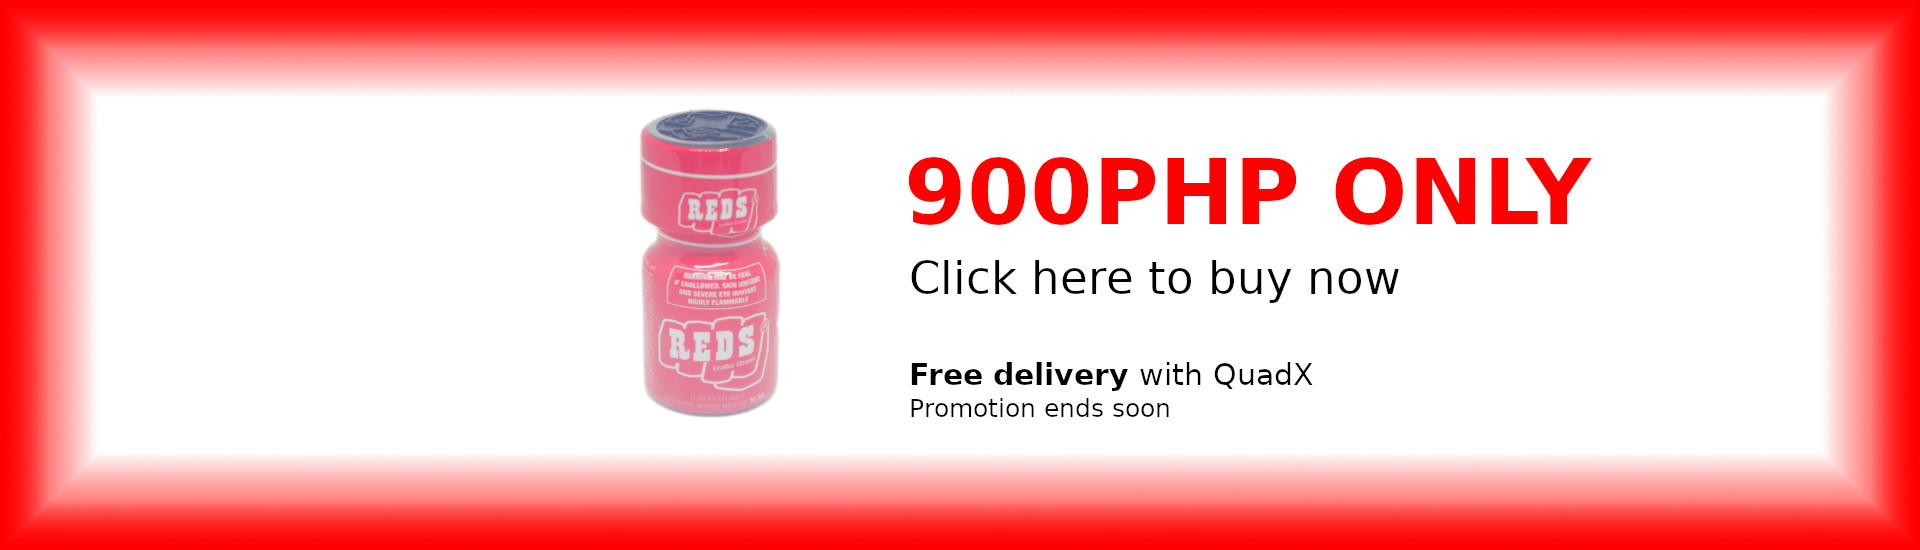 Reds Poppers For Only 900PHP